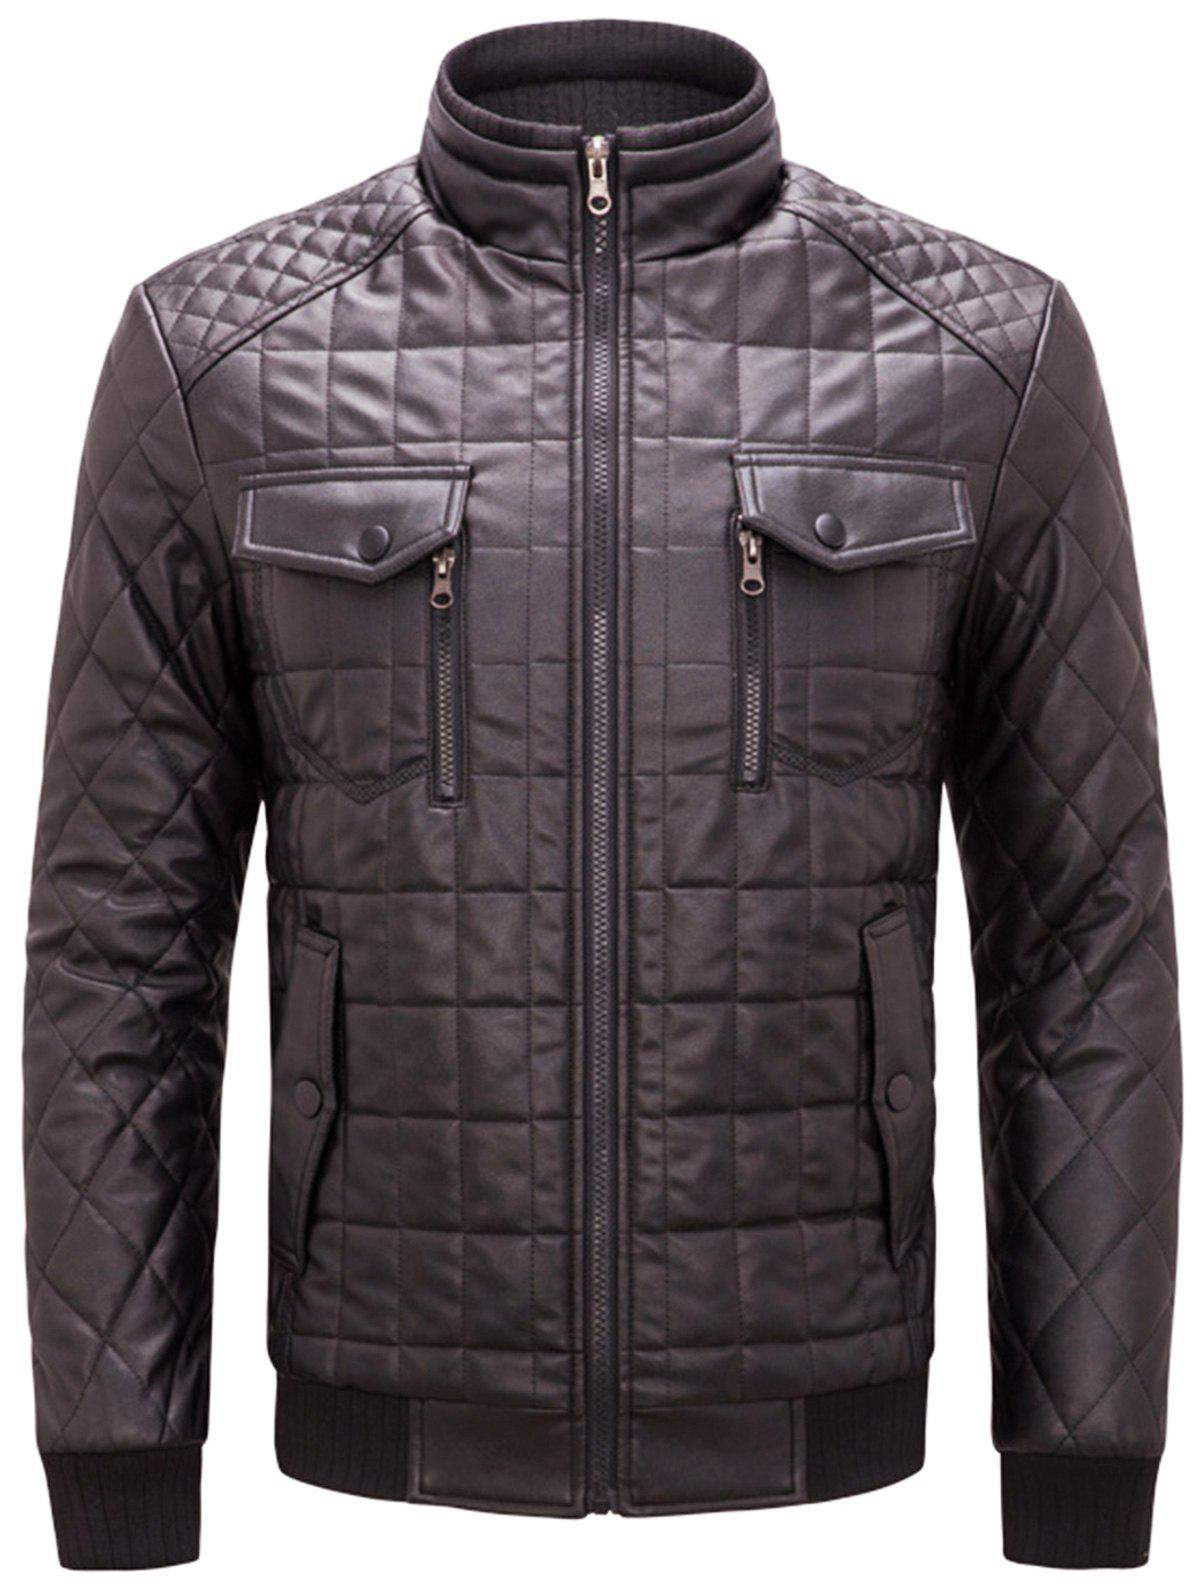 Chest Flap Pockets Quilted Faux Leather Jacket - COFFEE 3XL